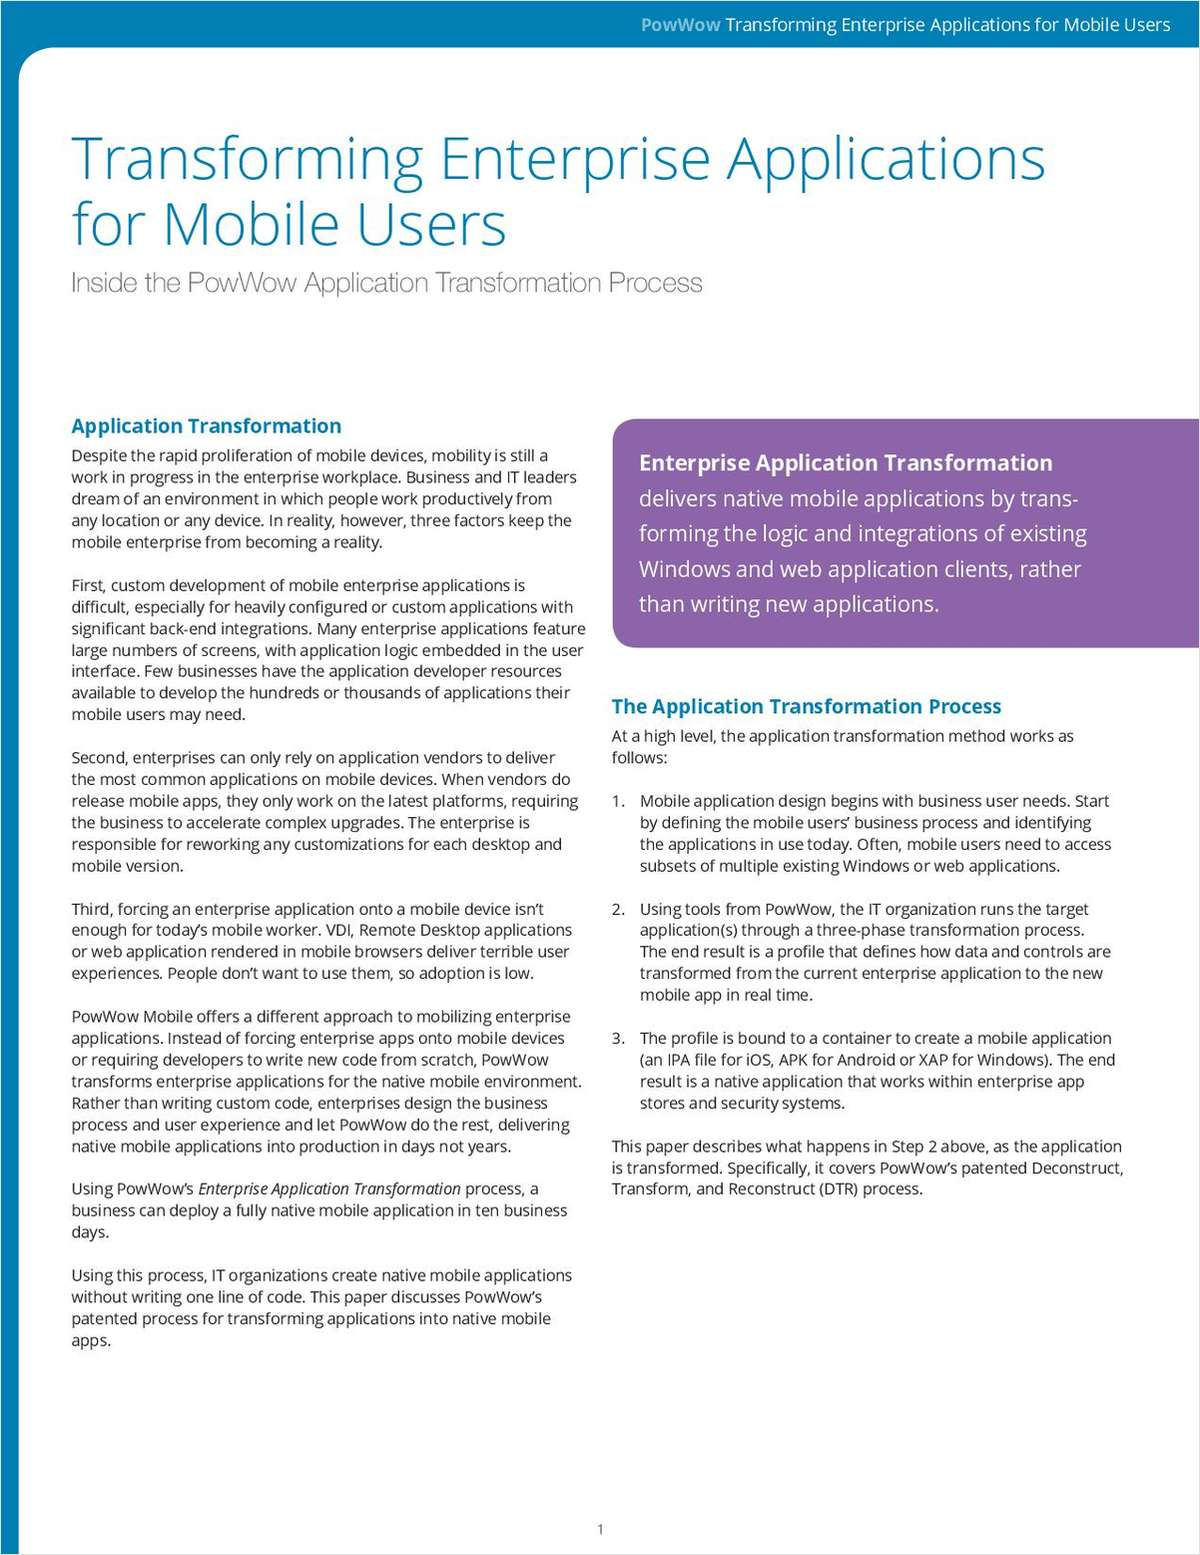 New Whitepaper: Transforming Enterprise Applications for Mobile Users